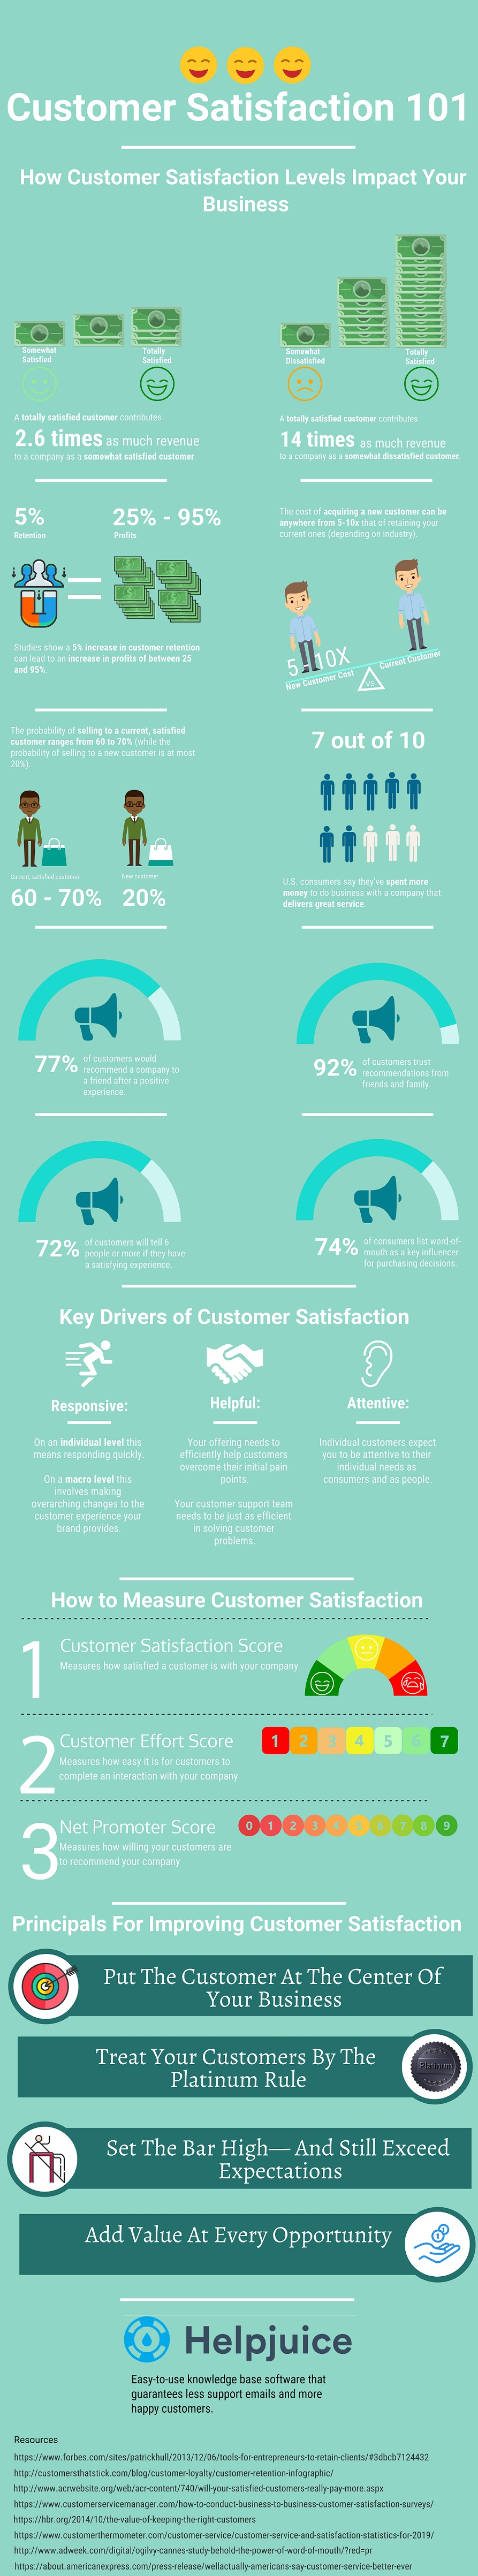 Customer Satisfaction-101- Infographic-plaza